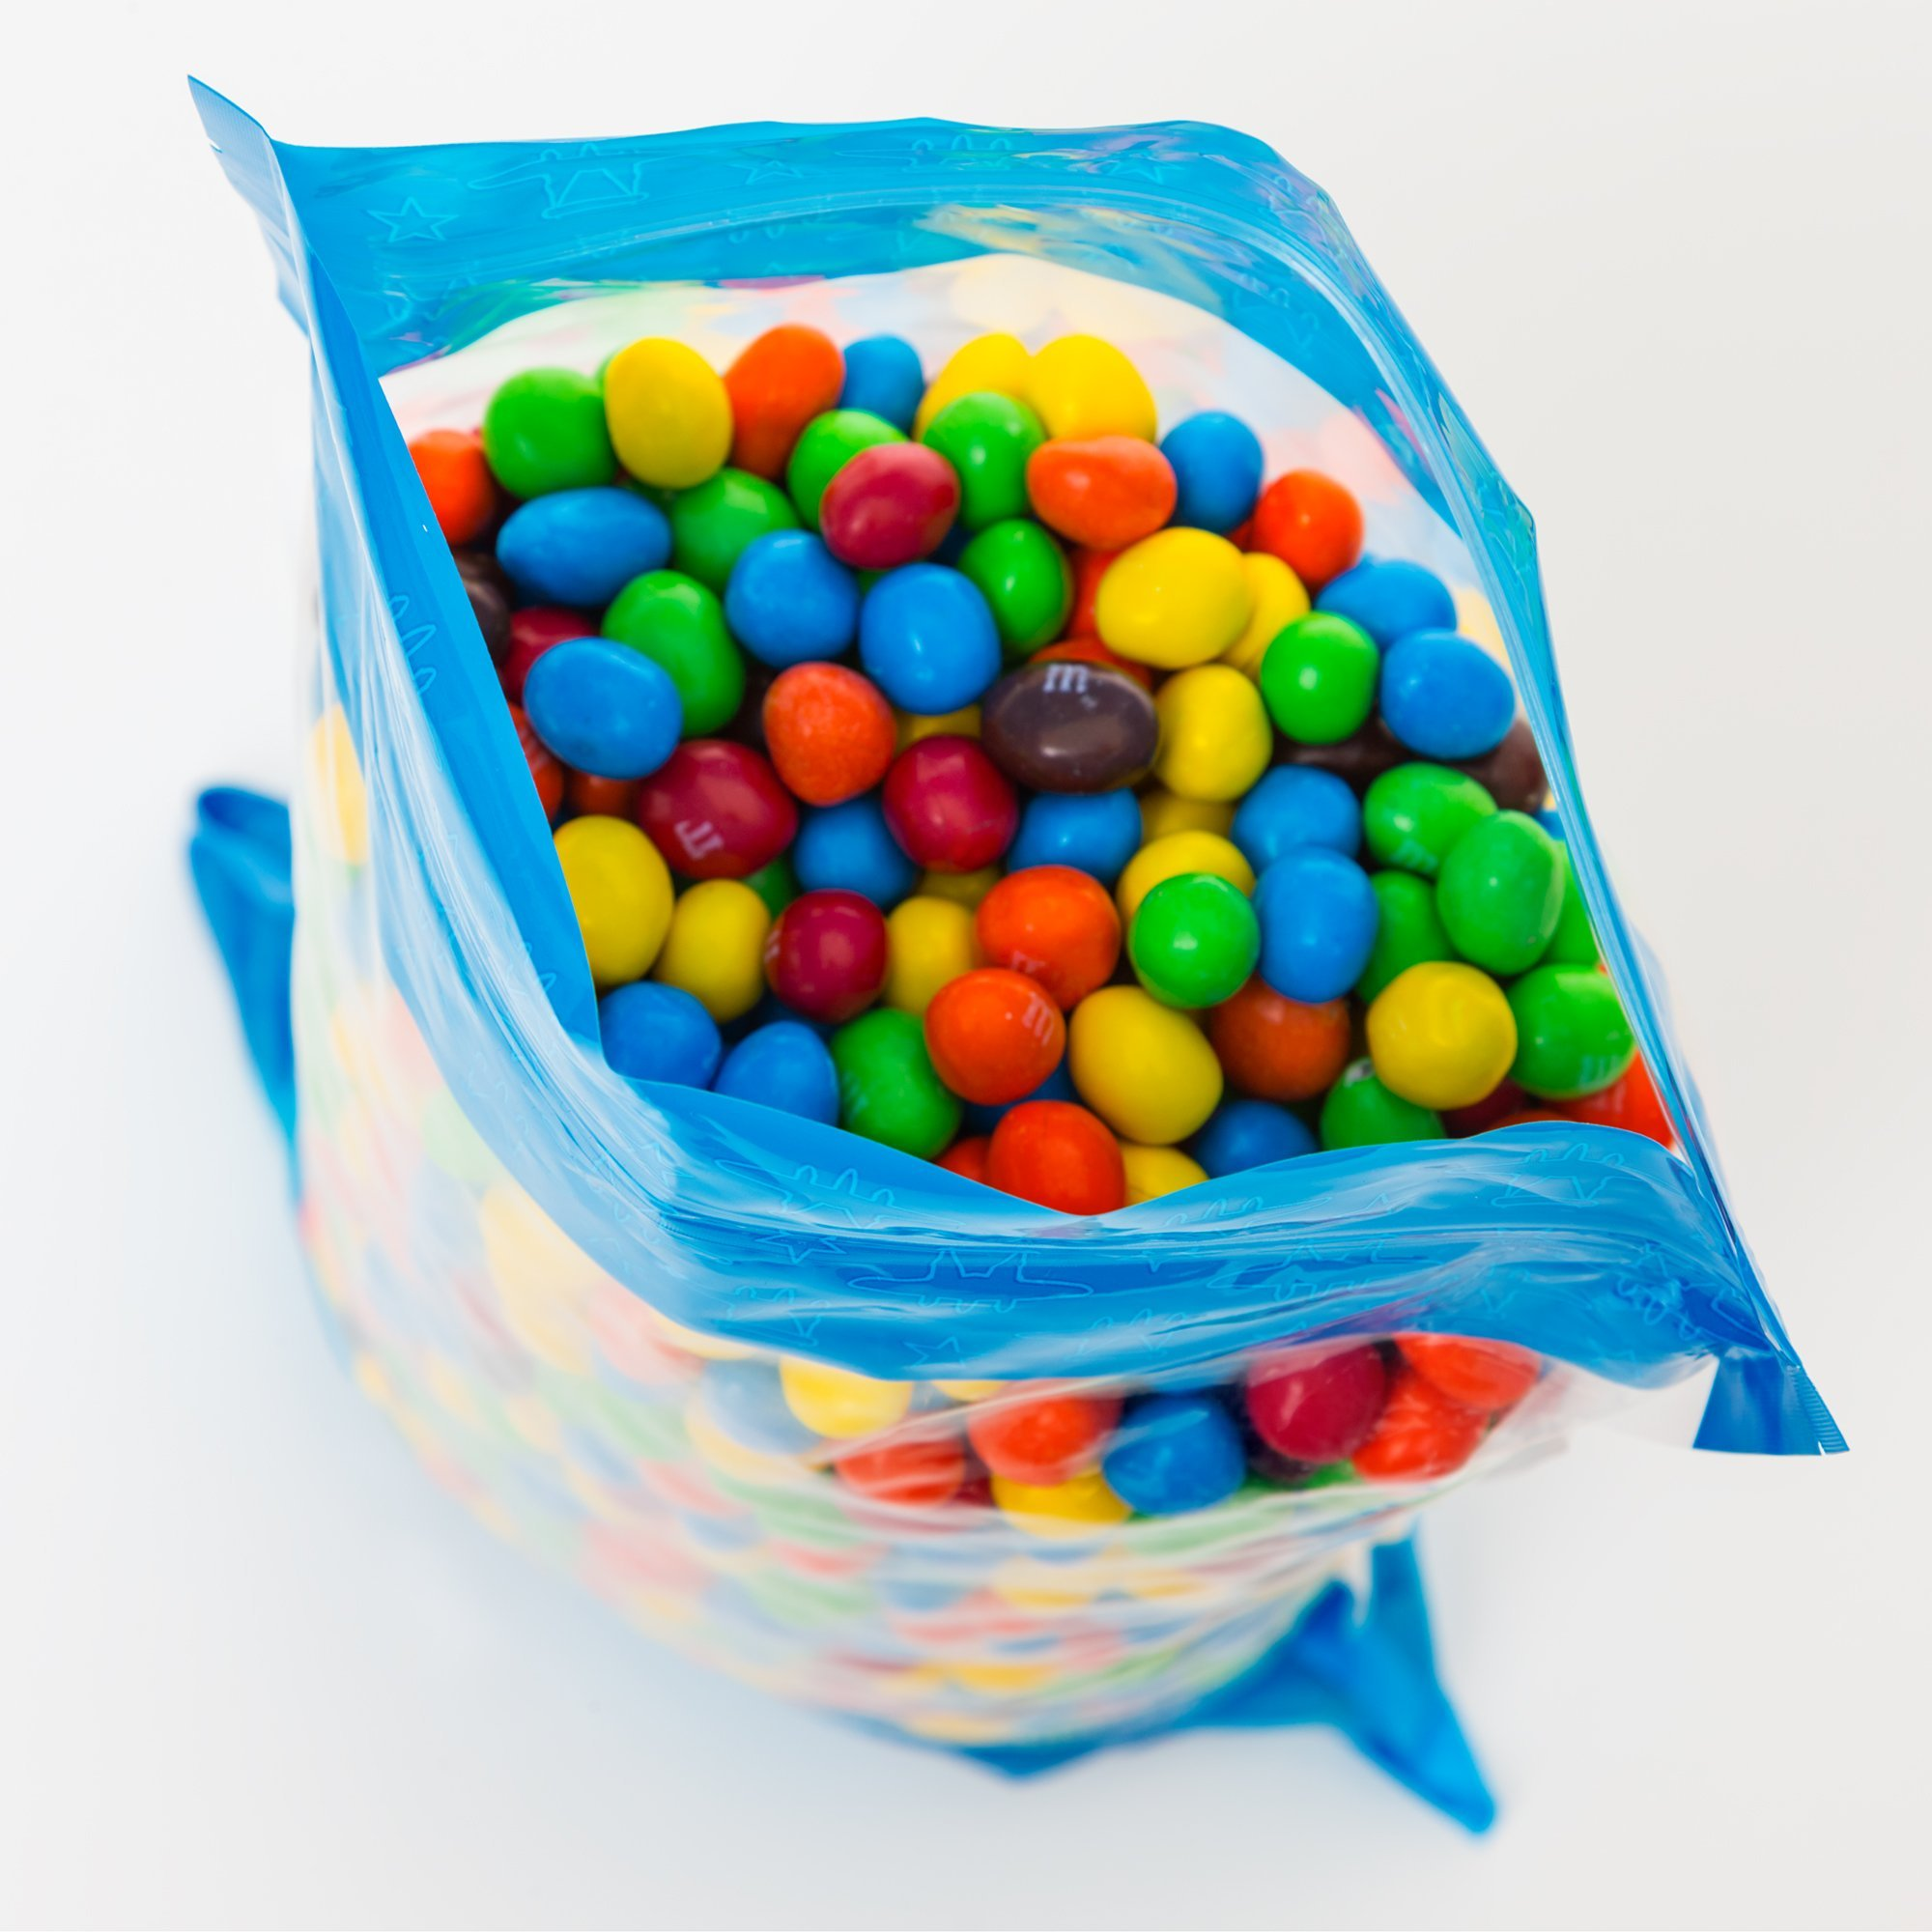 Bulk Peanut M&Ms in Resealable Bomber Bag, Wholesale Chocolate & Peanut Candy (5lb Bag) by Fast Fresh Nuts (Image #4)